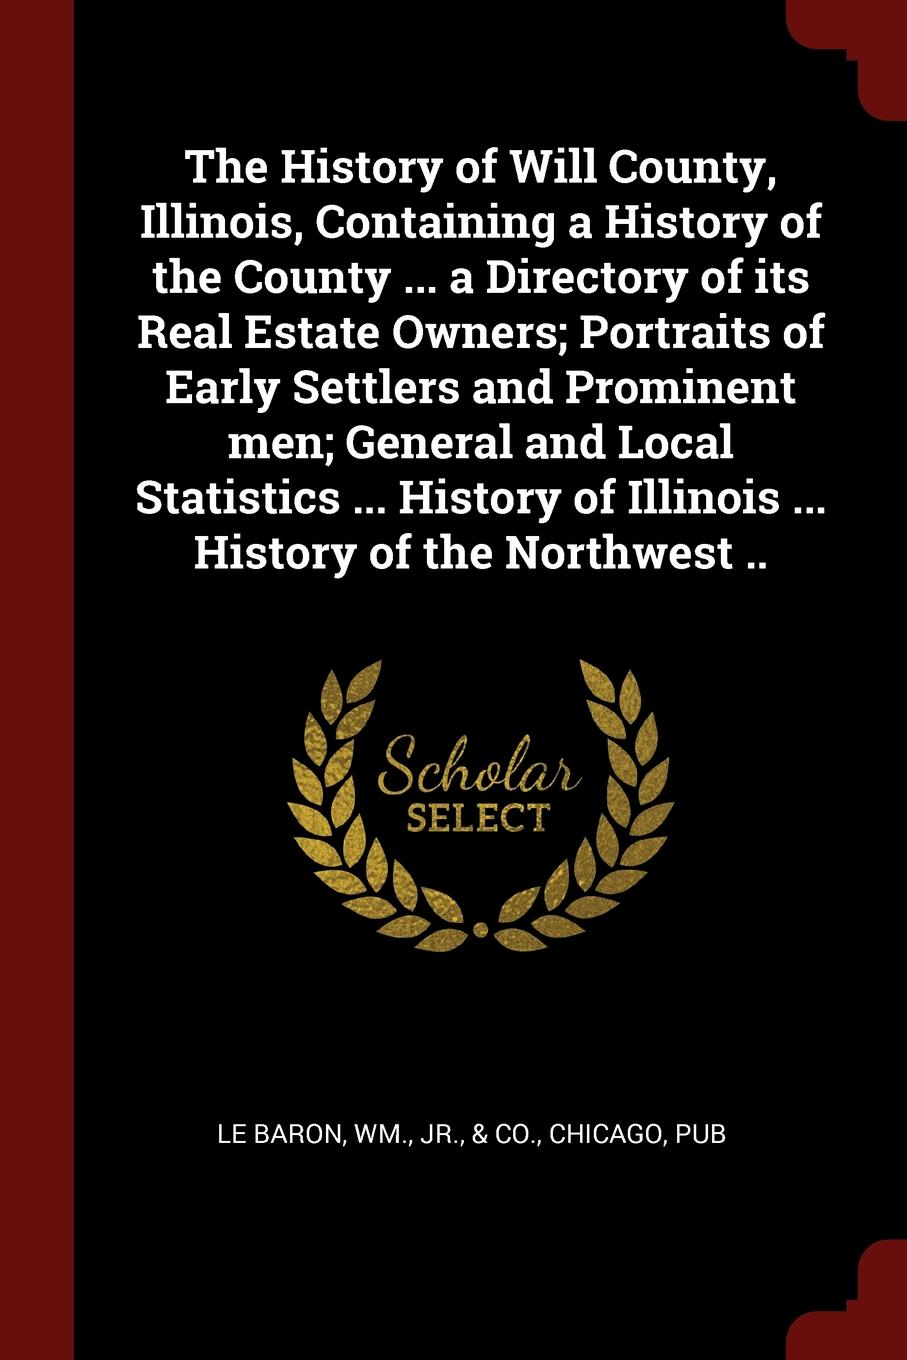 The History of Will County, Illinois, Containing a History of the County ... a Directory of its Real Estate Owners; Portraits of Early Settlers and Prominent men; General and Local Statistics ... History of Illinois ... History of the Northwest .. charles richard tuttle the centennial northwest an illustrated history of the northwest being a full and complete civil political and military history of this great section of the united states from its earliest settlement to the present time